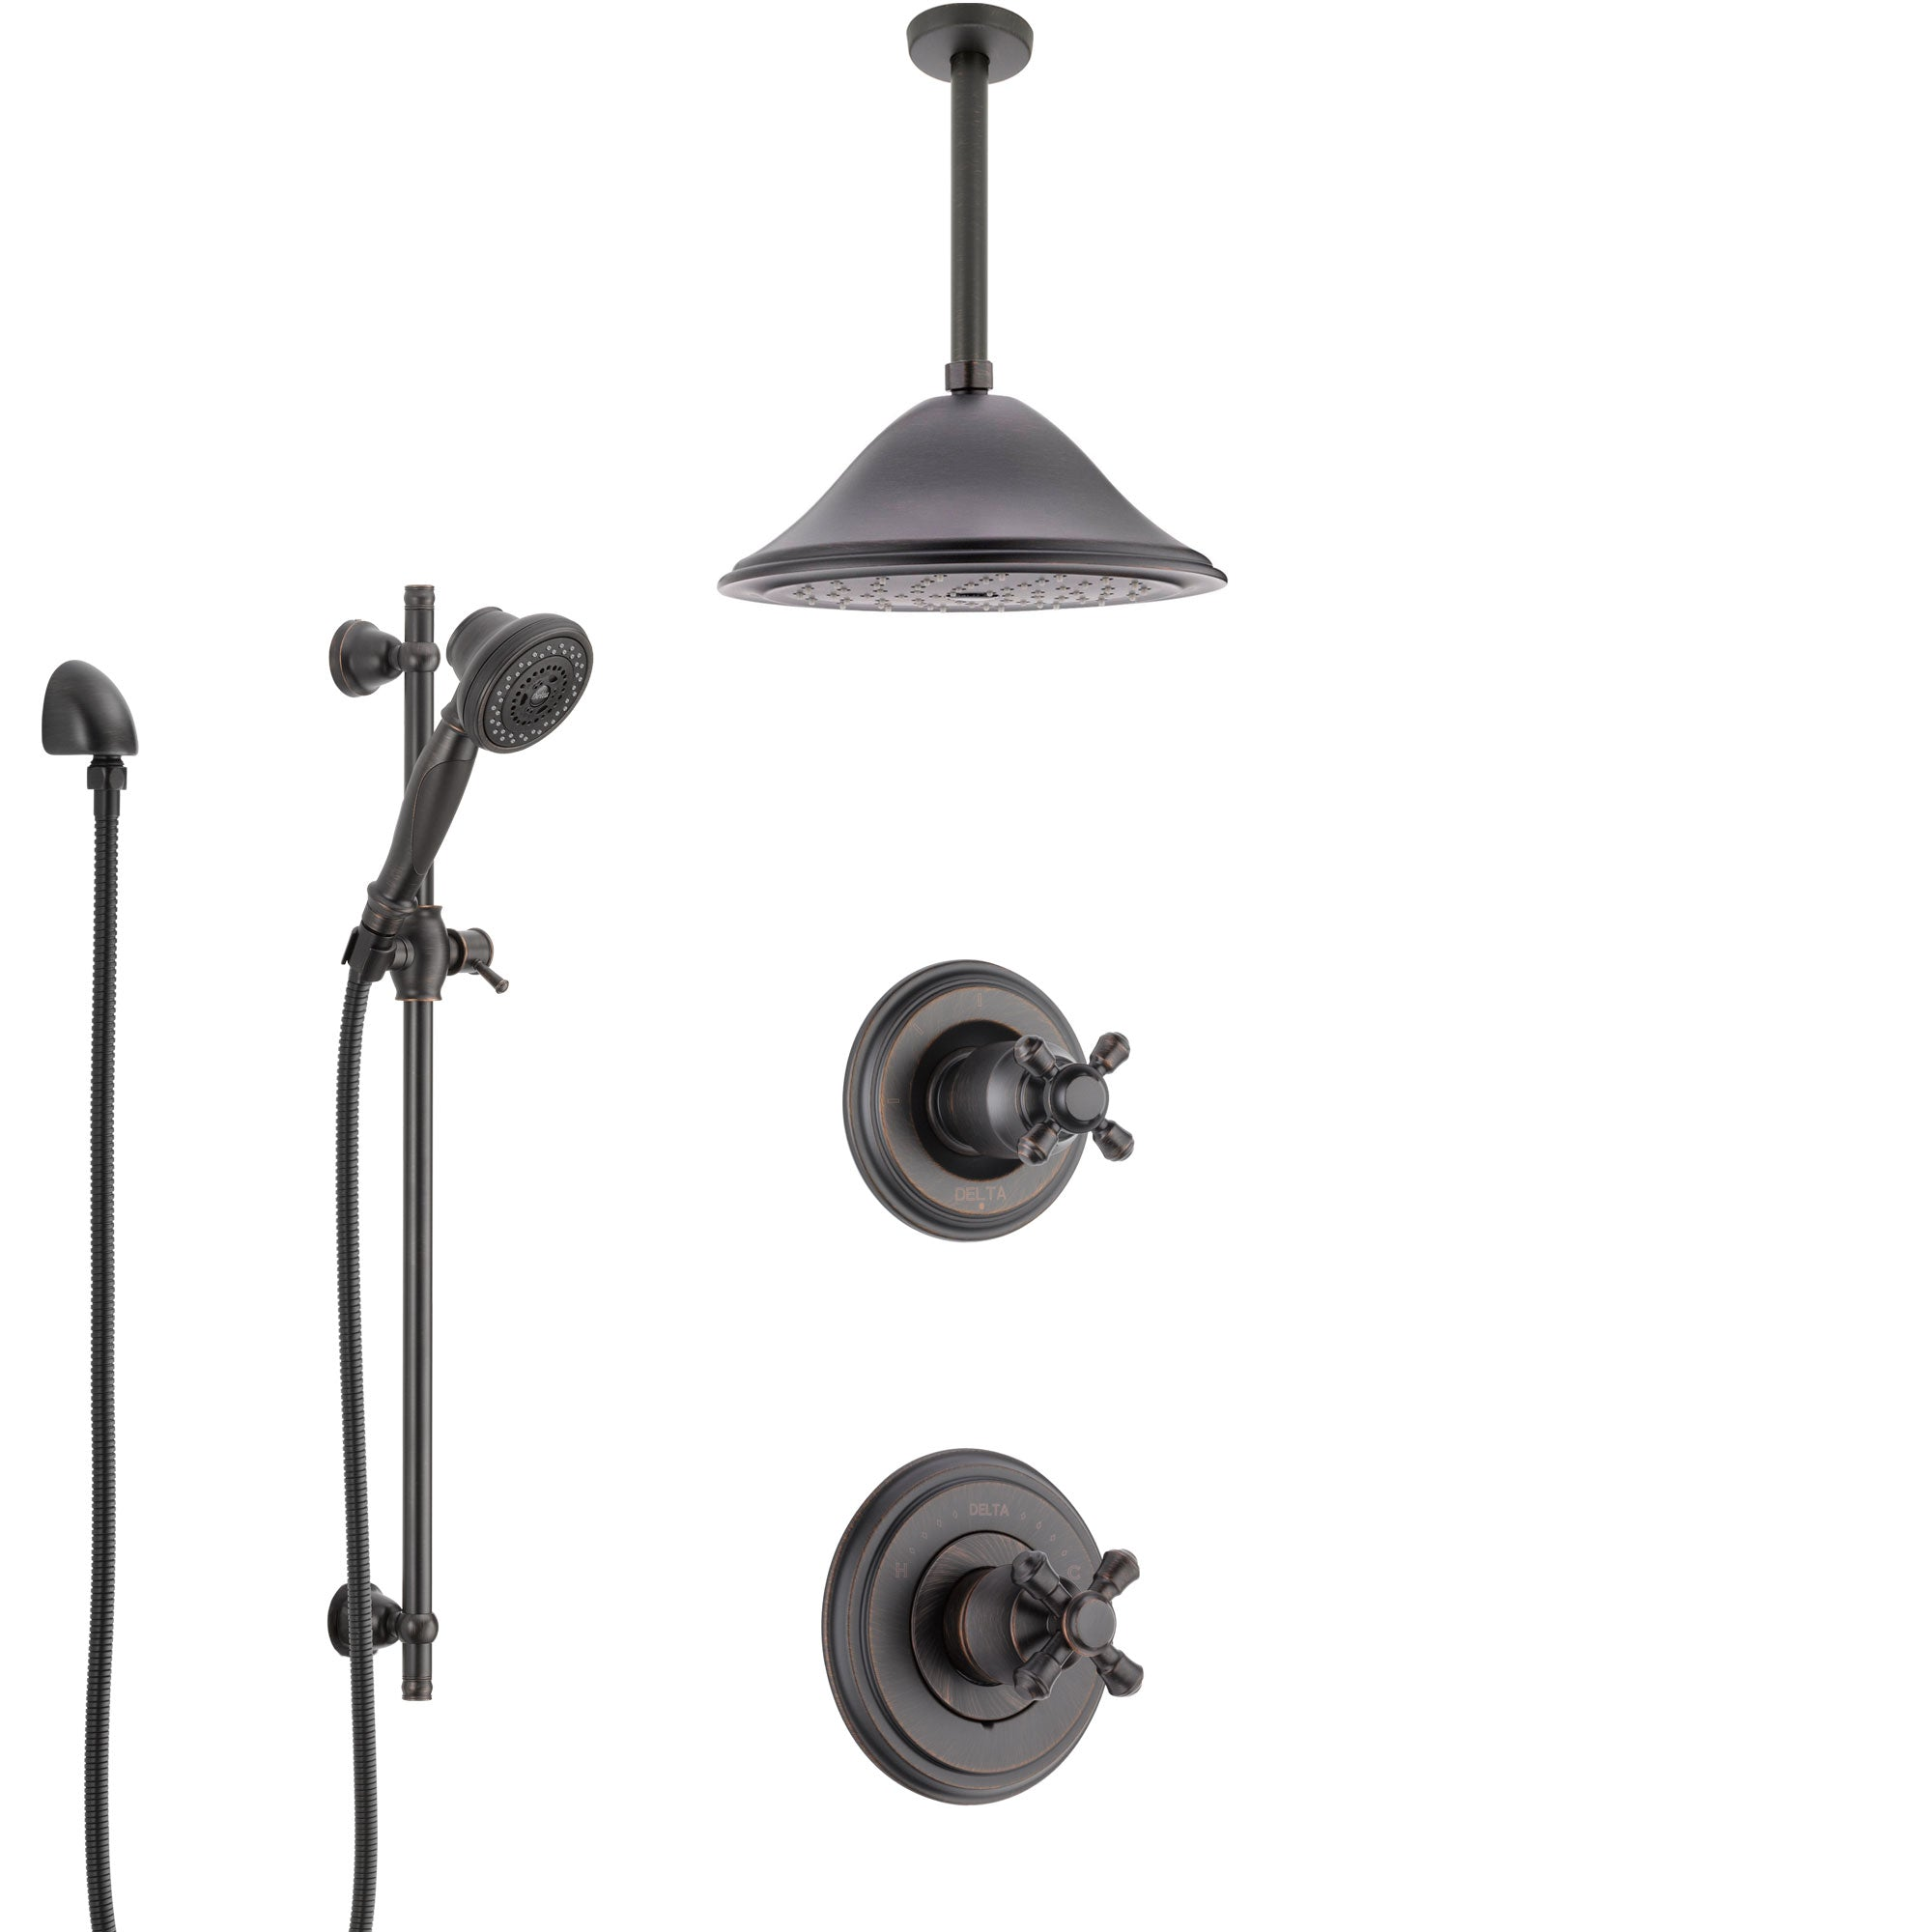 Delta Cassidy Venetian Bronze Shower System with Control Handle, Diverter, Ceiling Mount Showerhead, and Hand Shower with Slidebar SS14972RB7